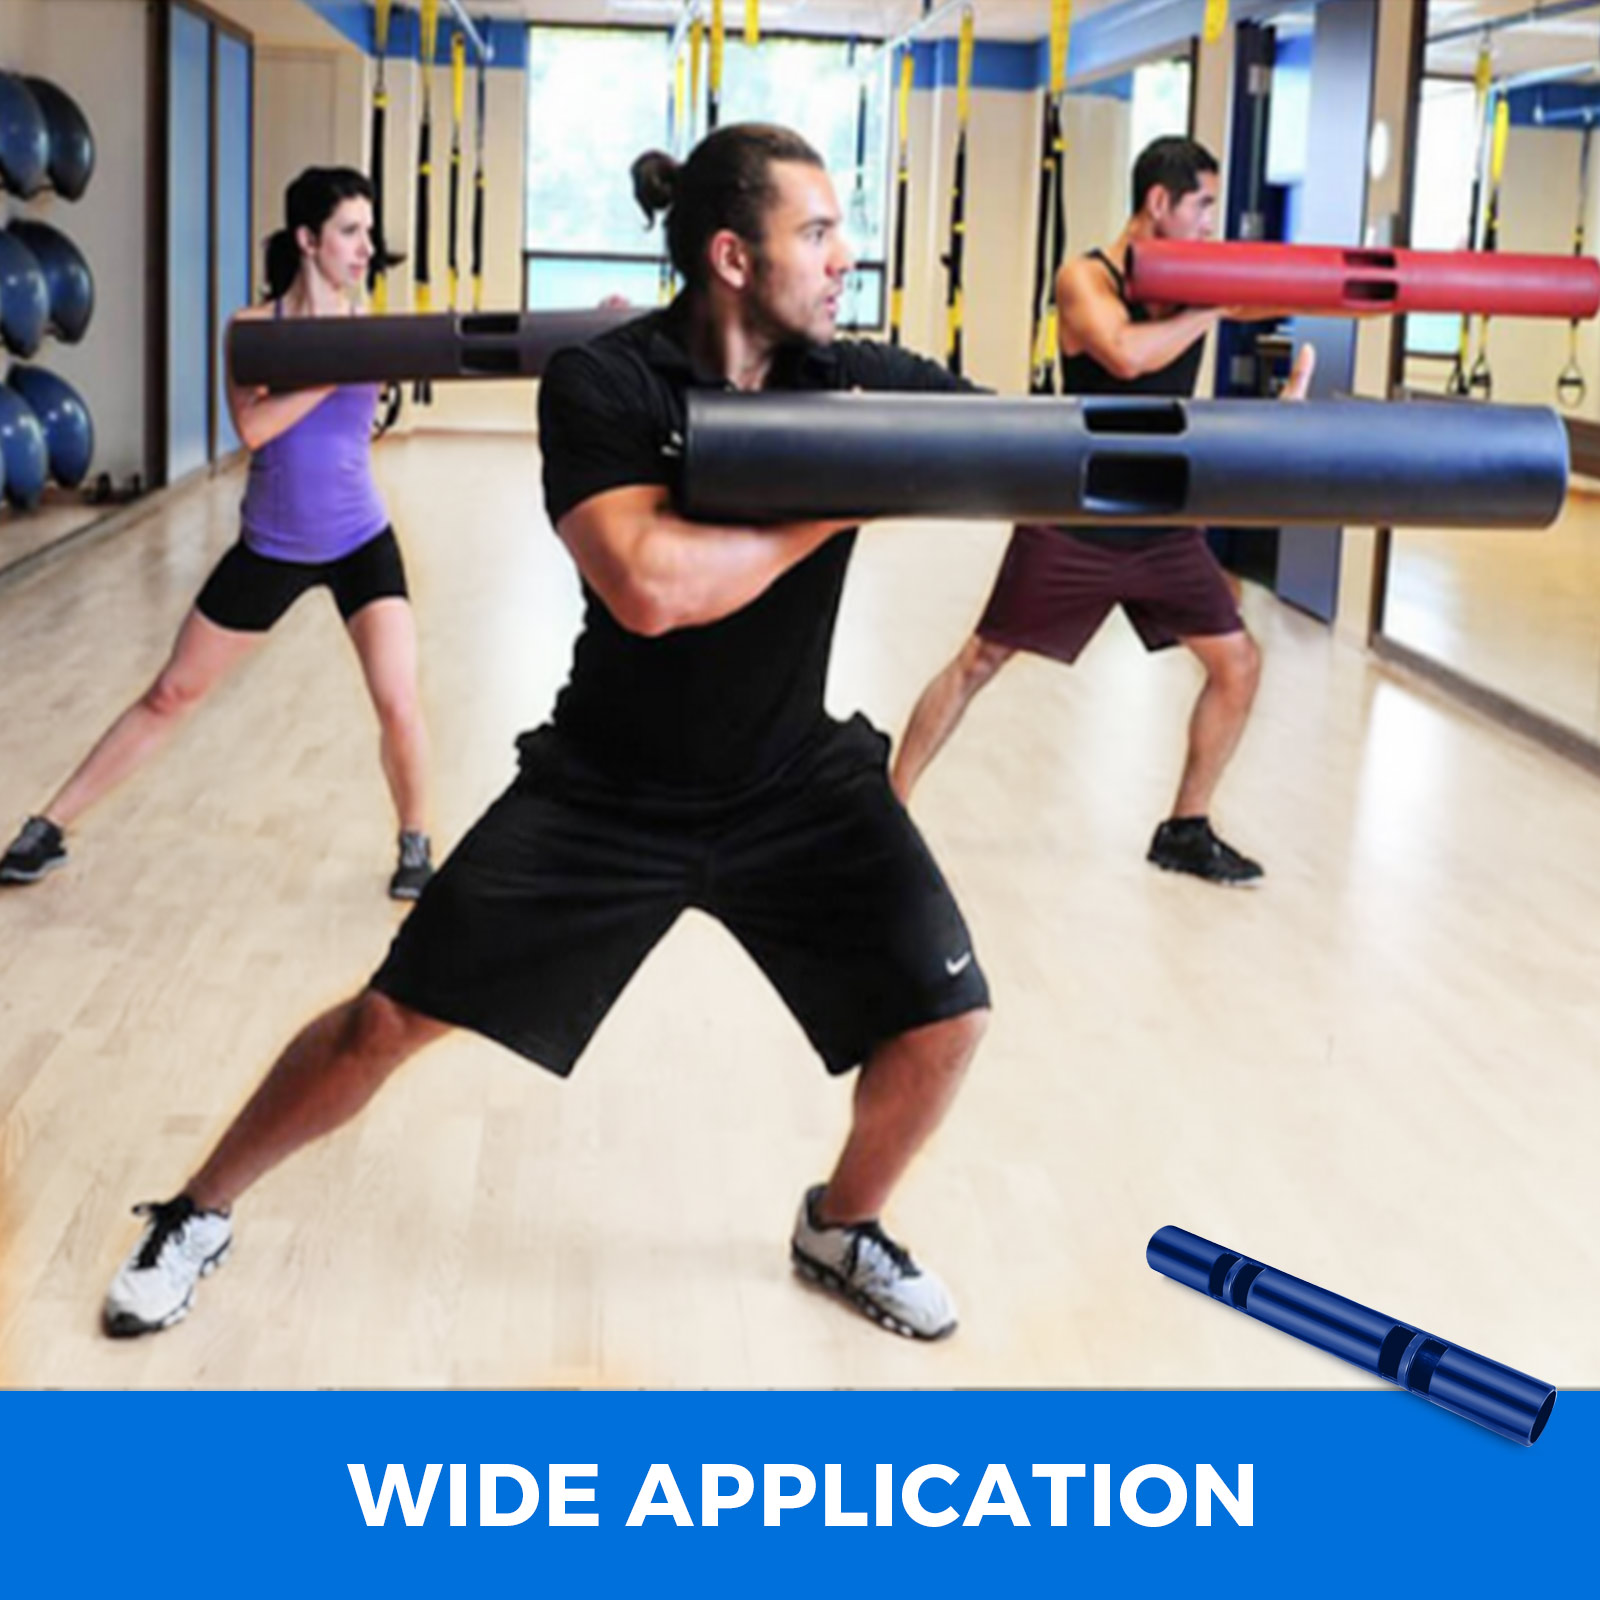 Vipr-Fitpro-Fitness-Tube-Loaded-Movement-Training-weightlifting-4-6-8-10-12-Kg thumbnail 235